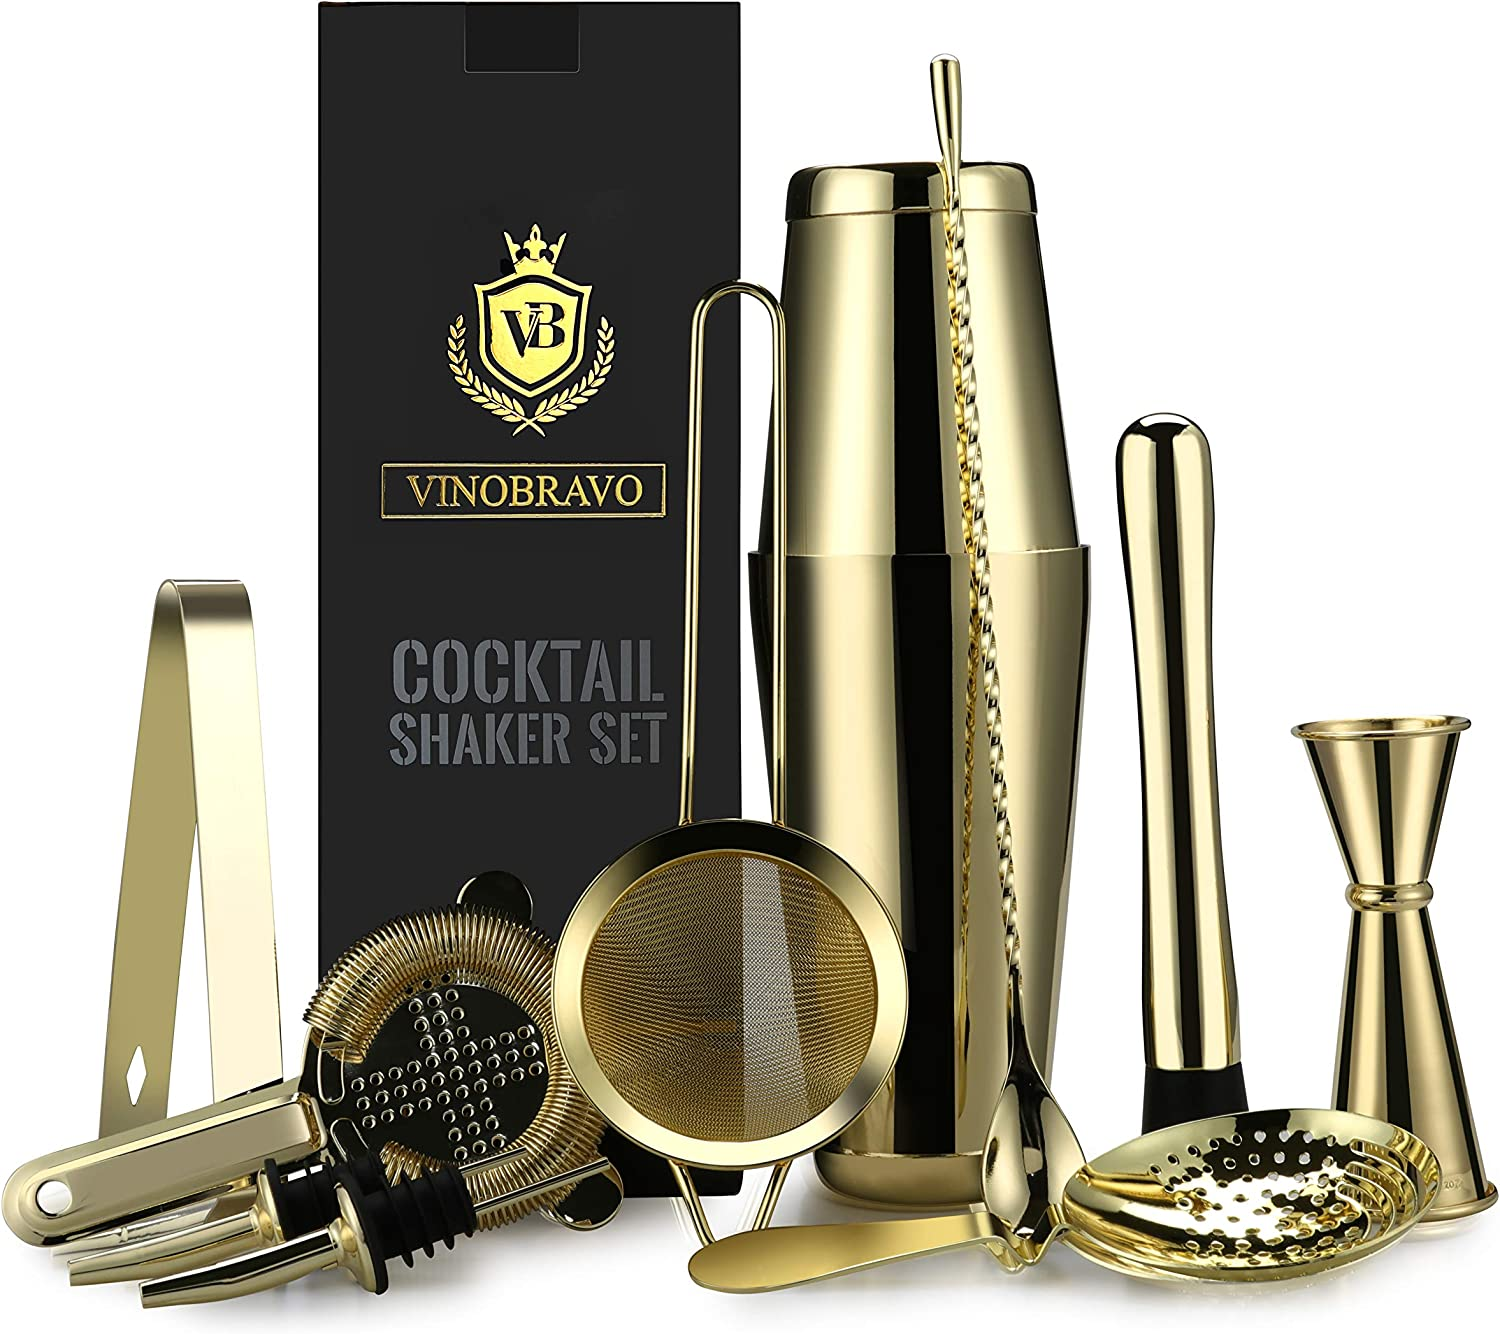 11-Piece Boston Cocktail Shaker Bar Set by VinoBravo: 2 Weighted Shaker Tins Gold Strainer Set 2 Liquor Pourers /& Cocktail Recipe Guide Bar Spoon Double Jigger Ice Muddler /& Tong